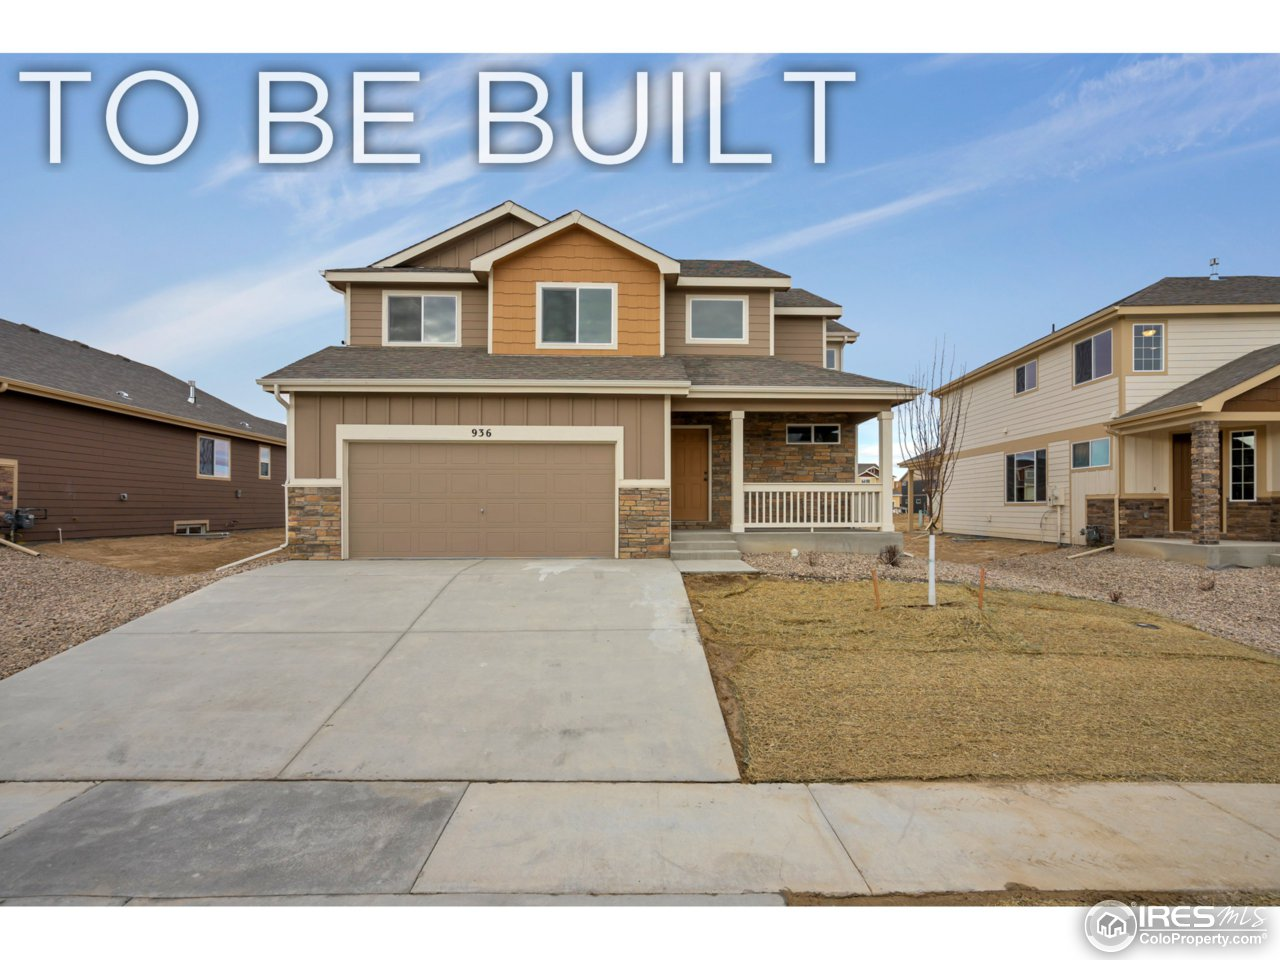 8916 15th St Rd, Greeley CO 80634